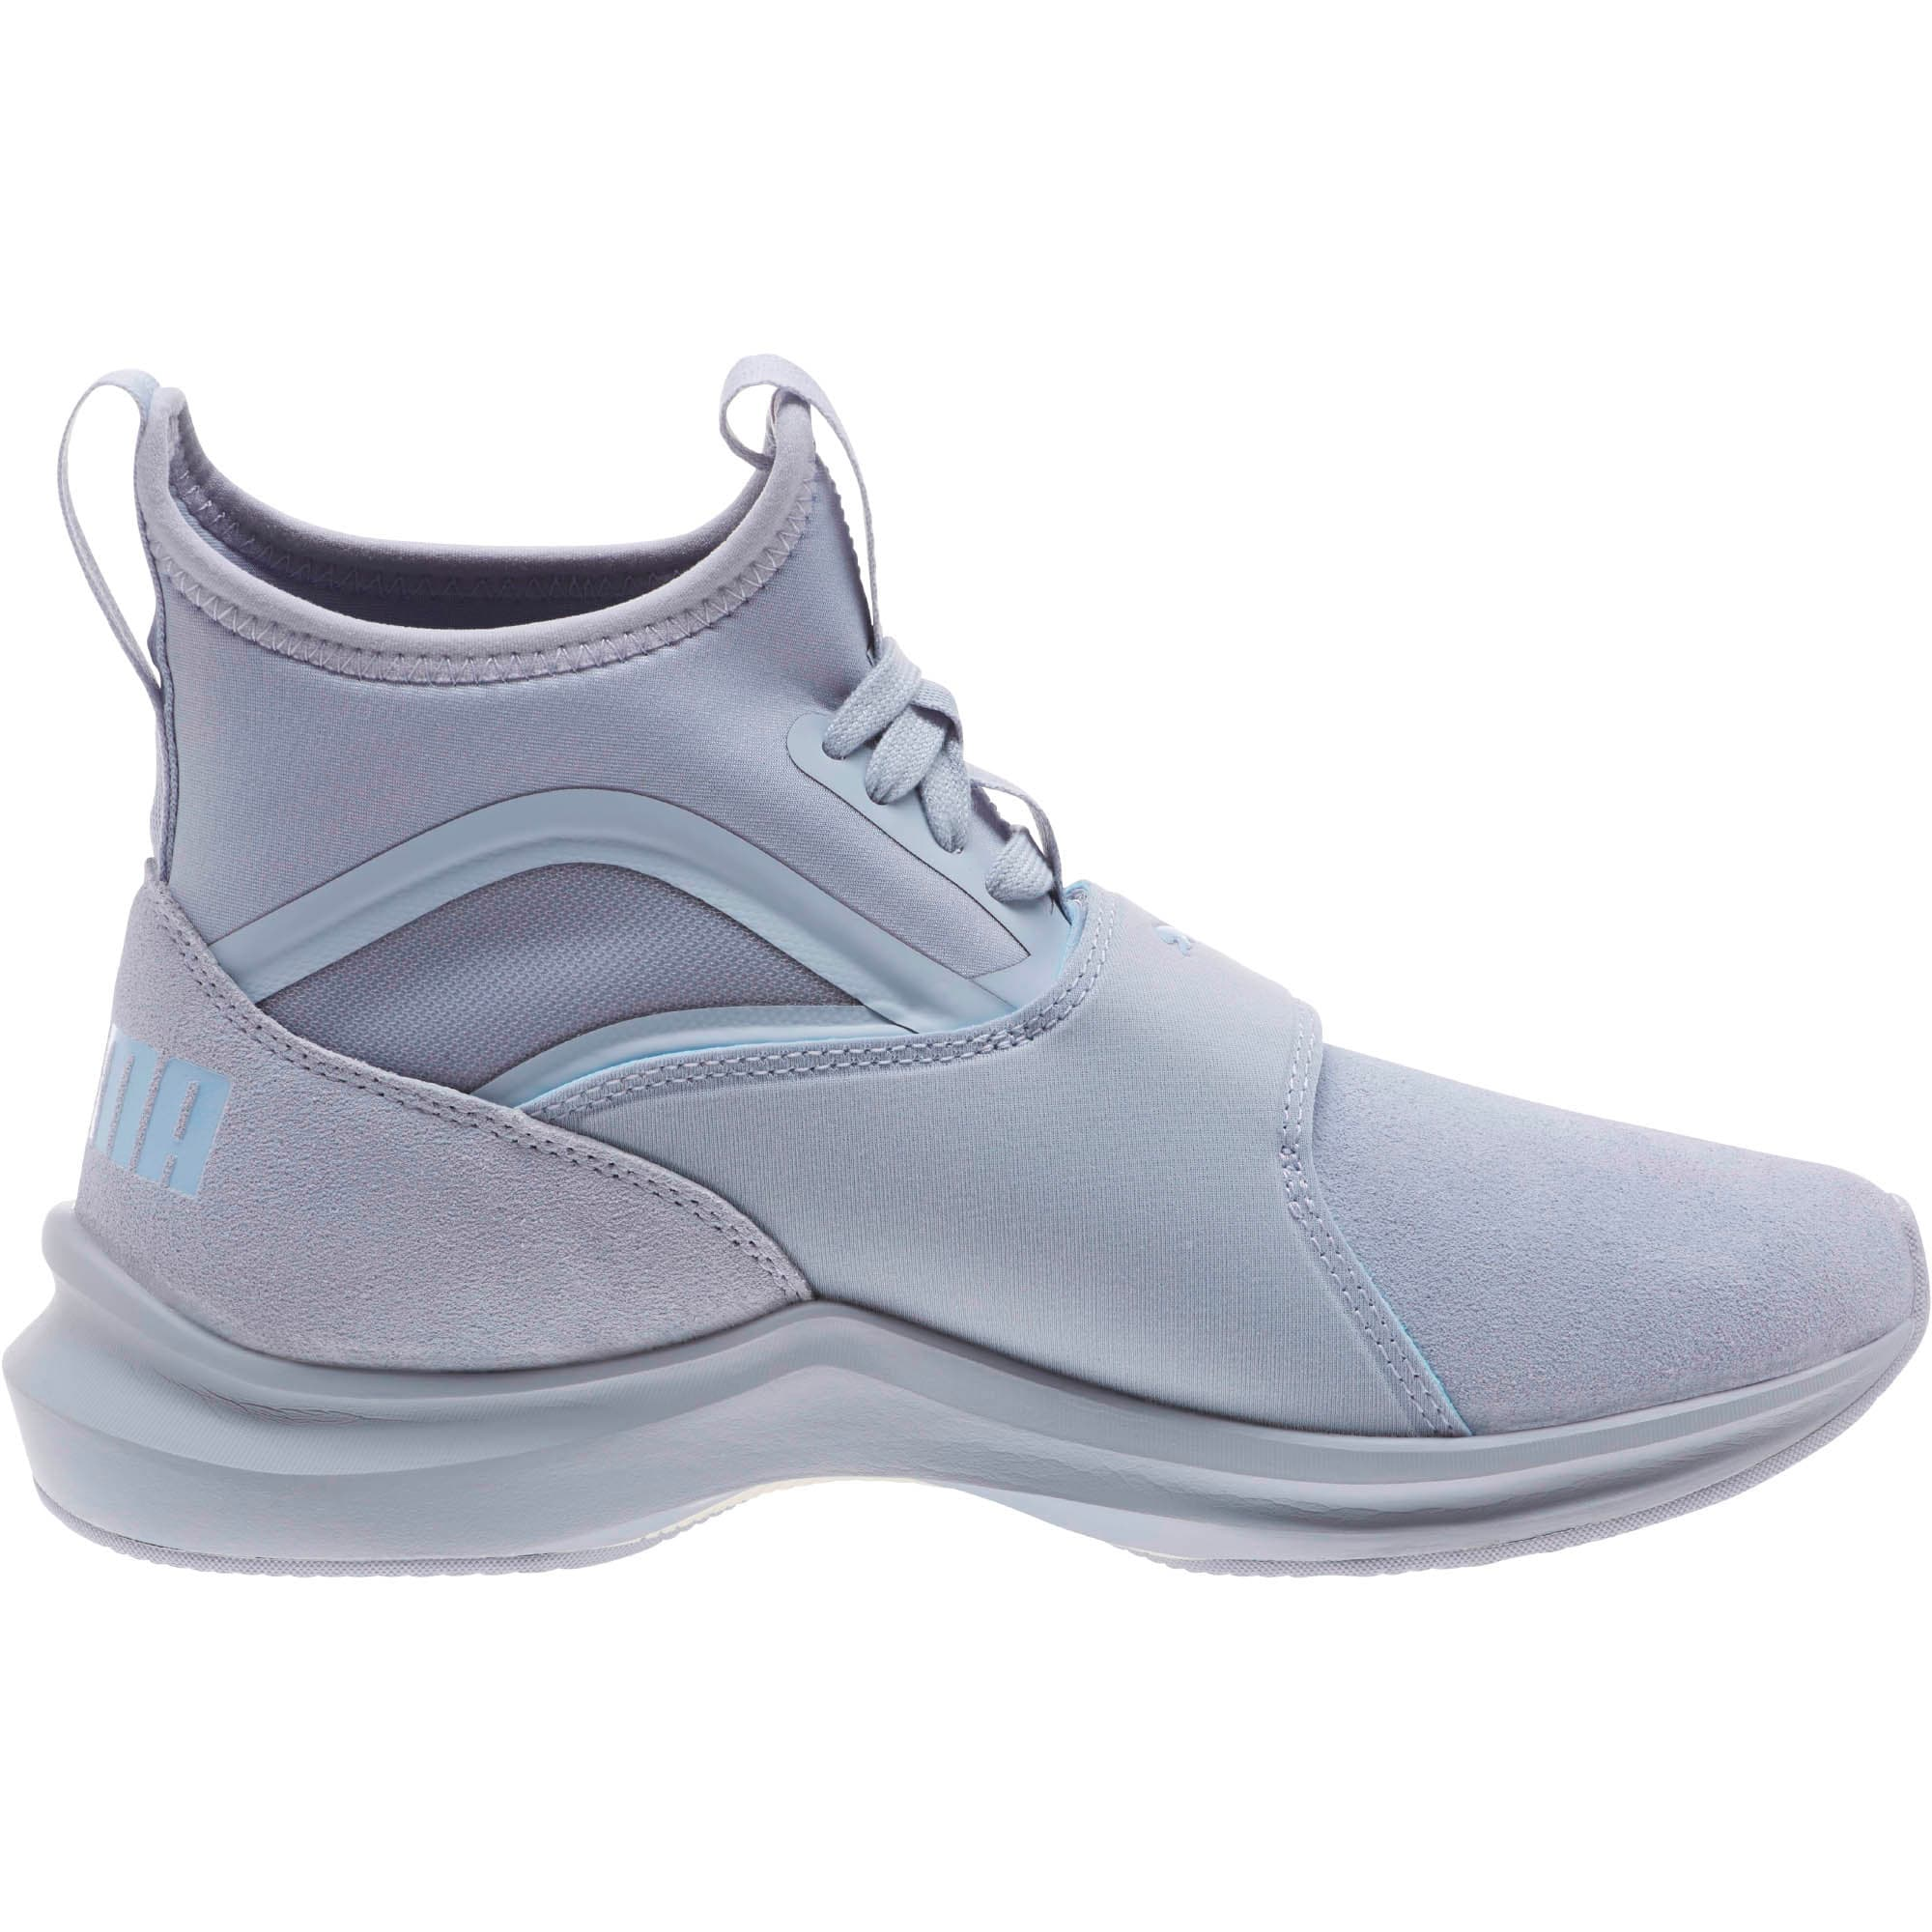 check out e0699 f2154 Phenom Suede Women's Training Shoes